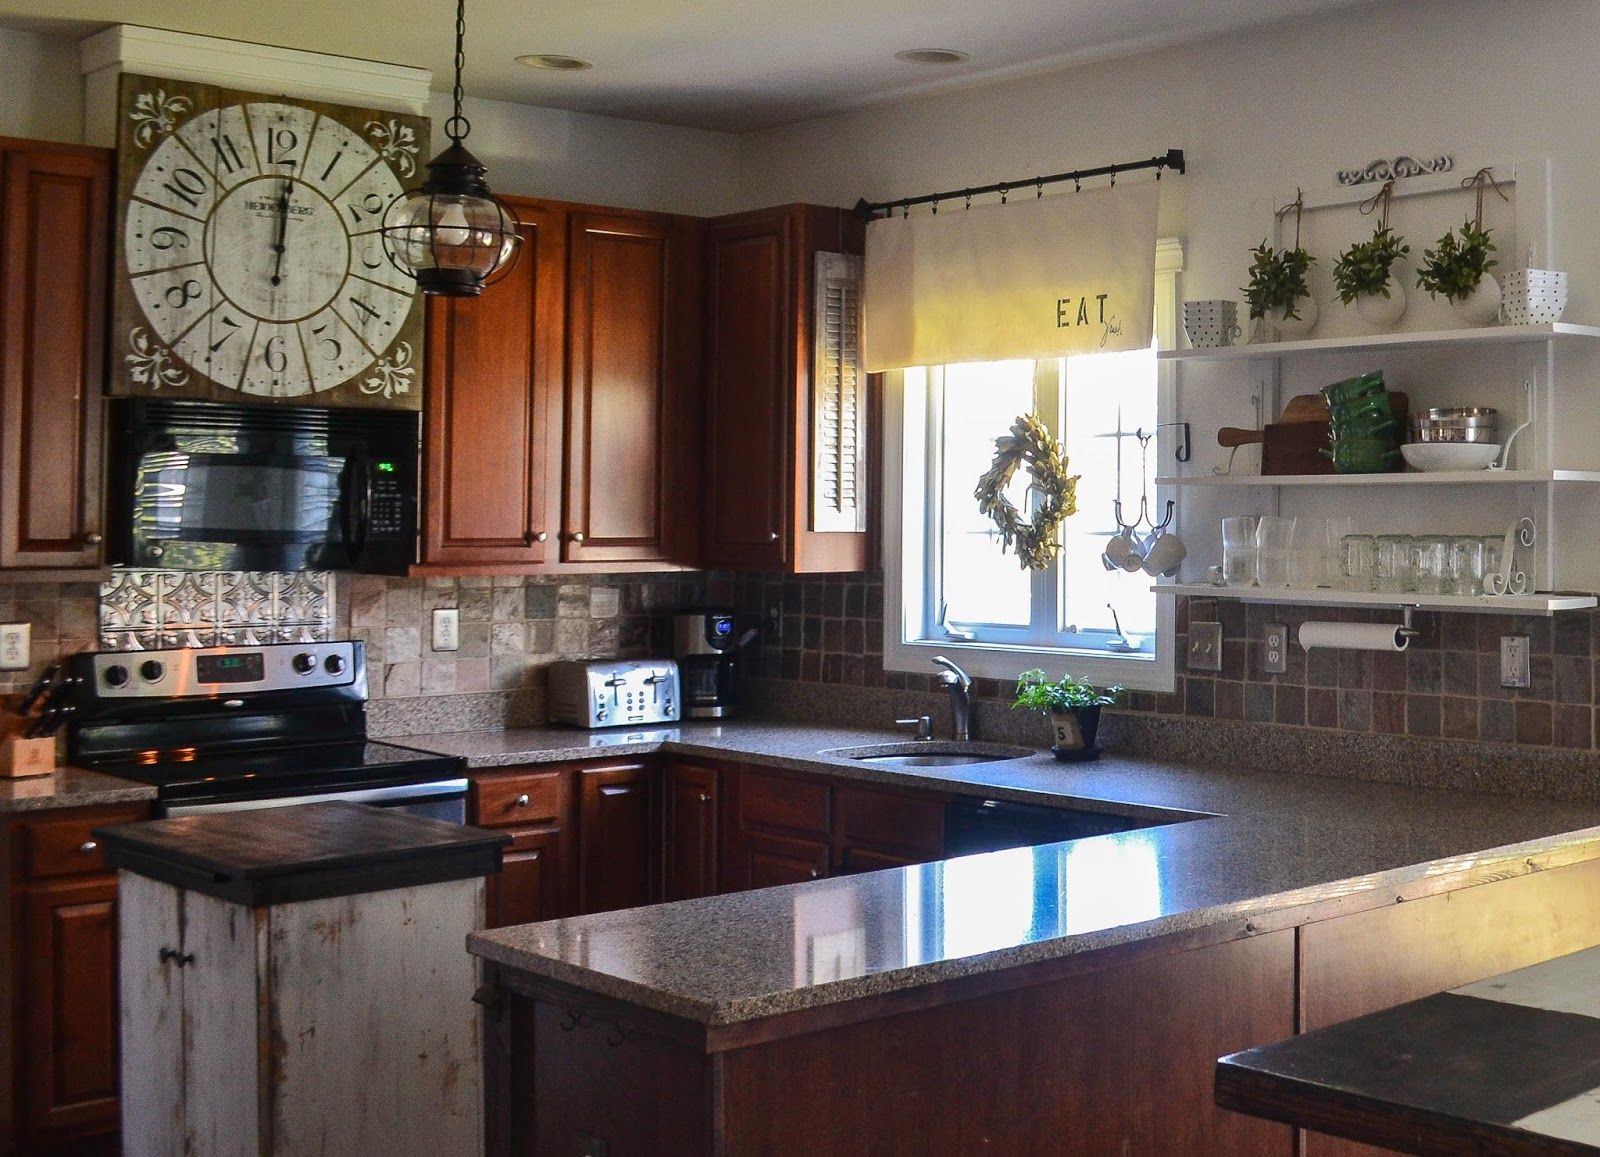 Down to Earth Style: { Eat Fresh } Kitchen Valance